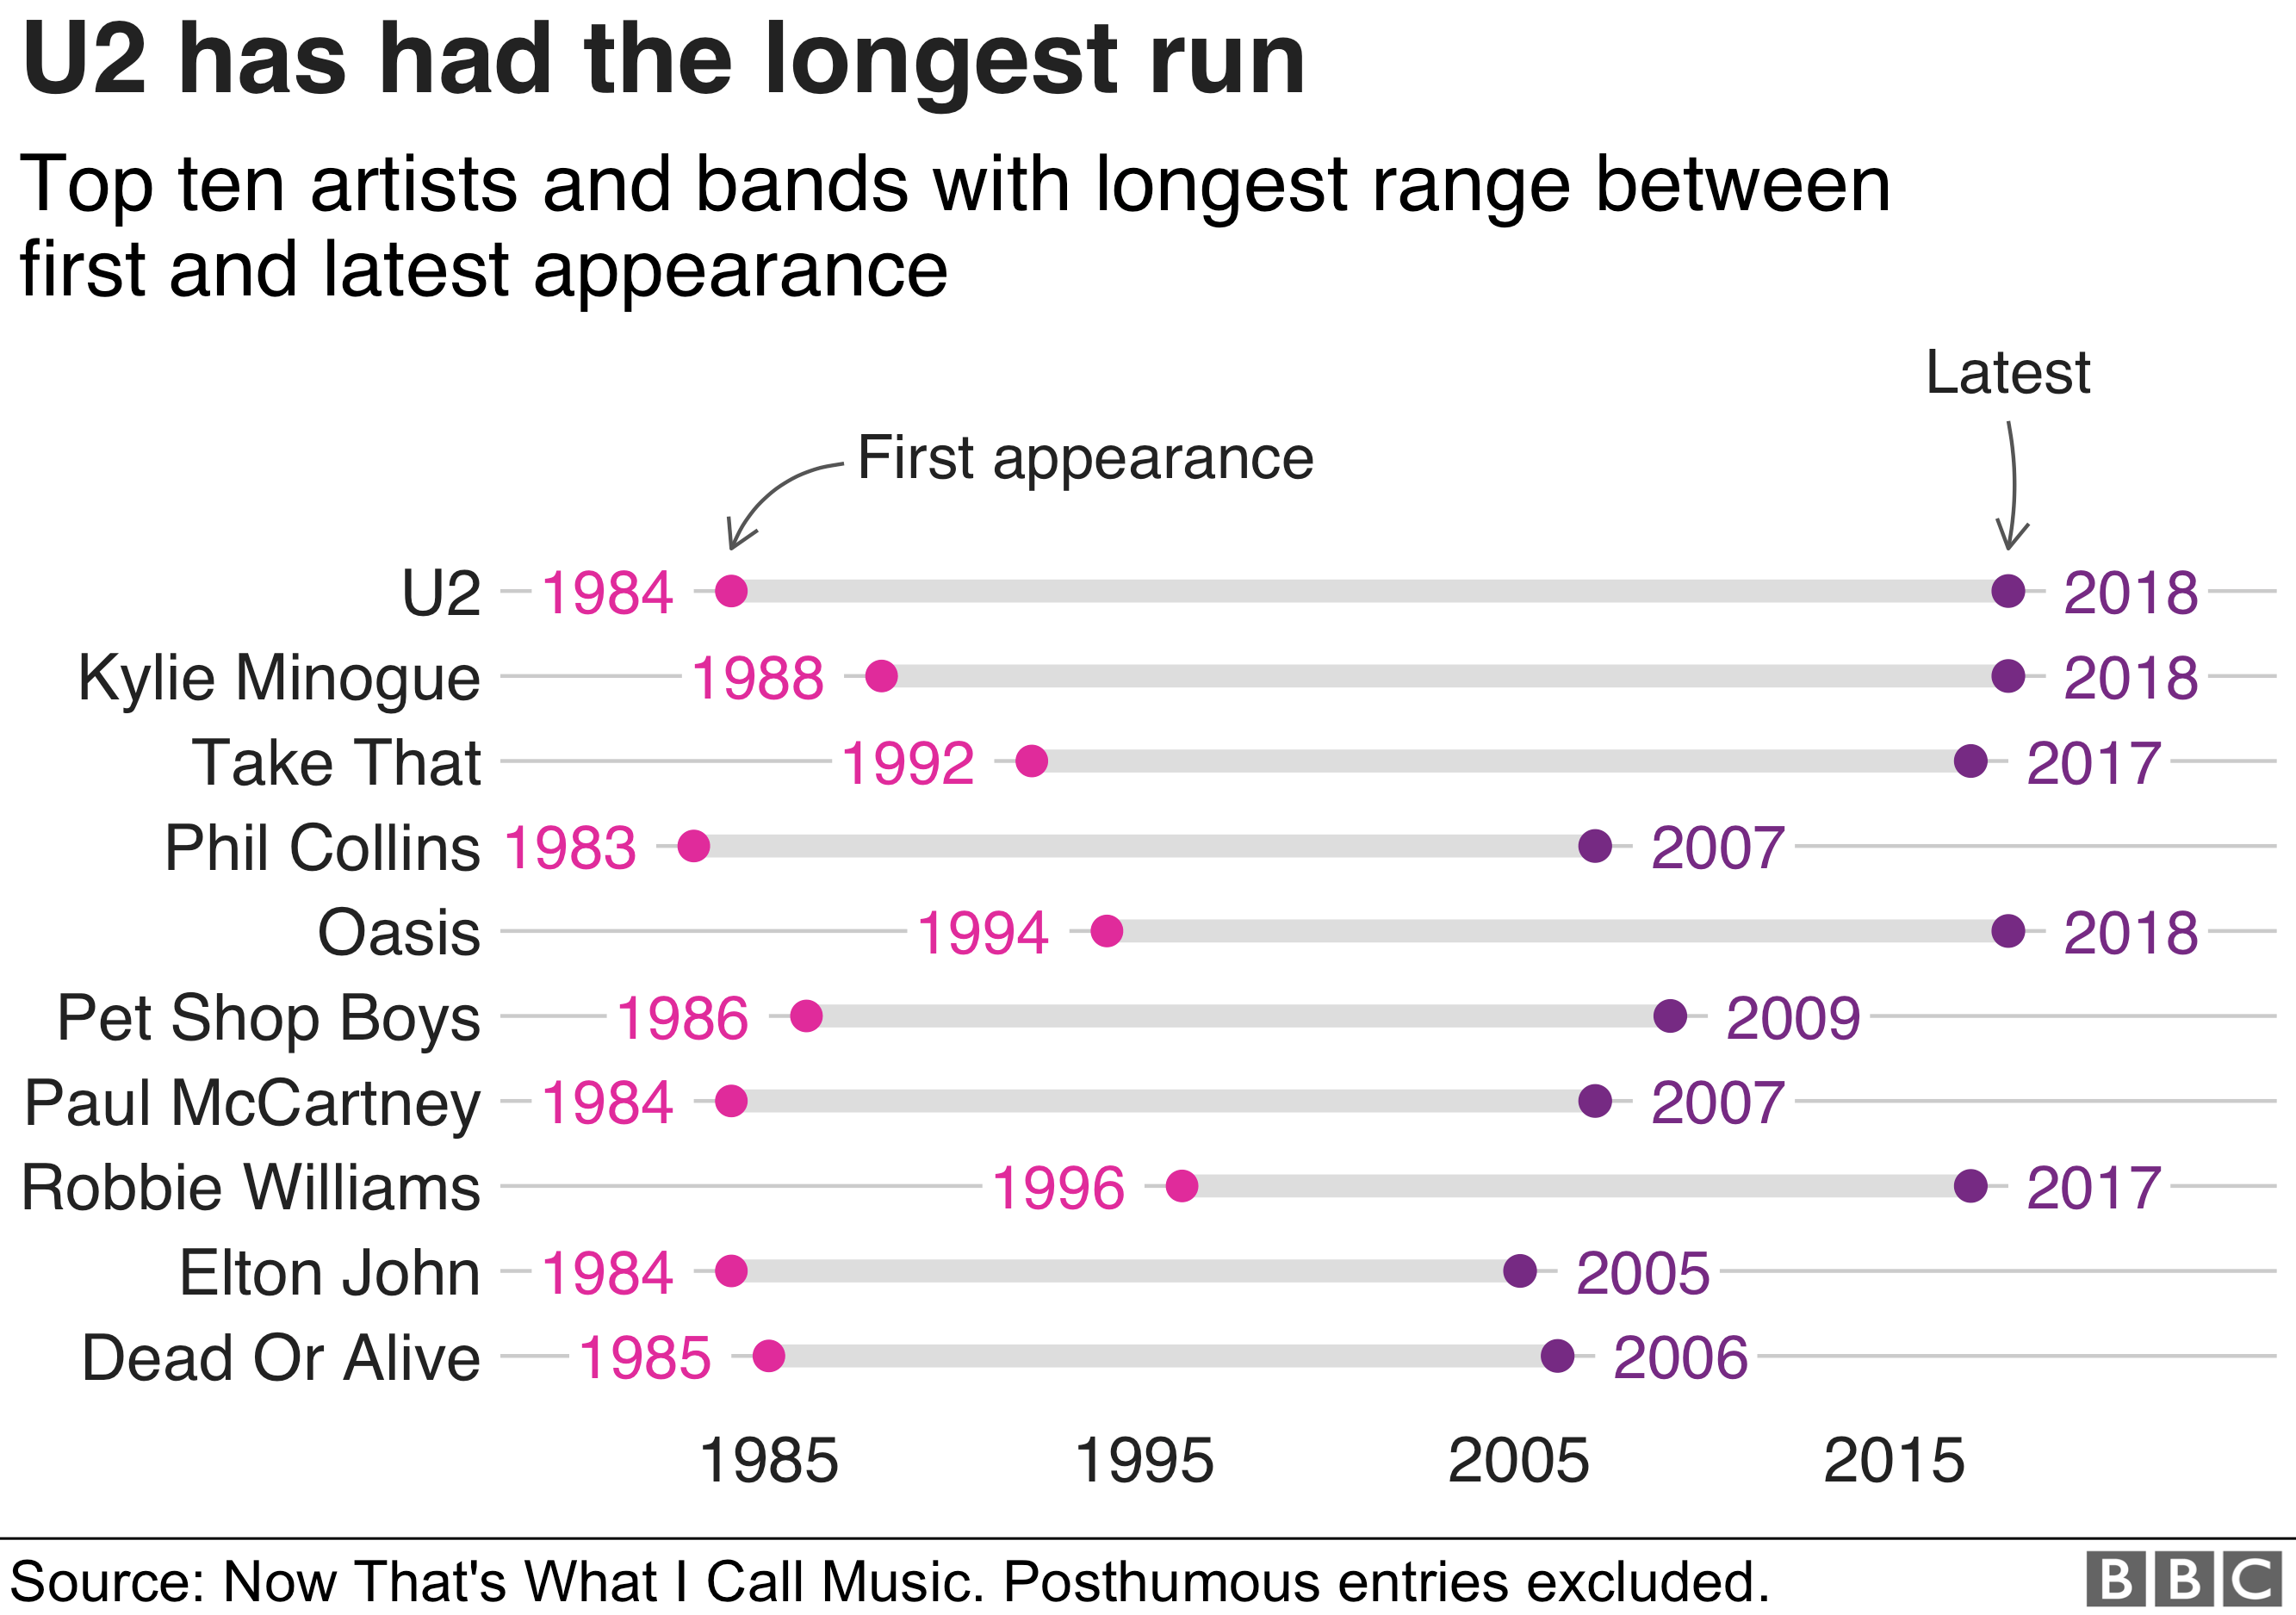 Artists with the most longevity on Now albums